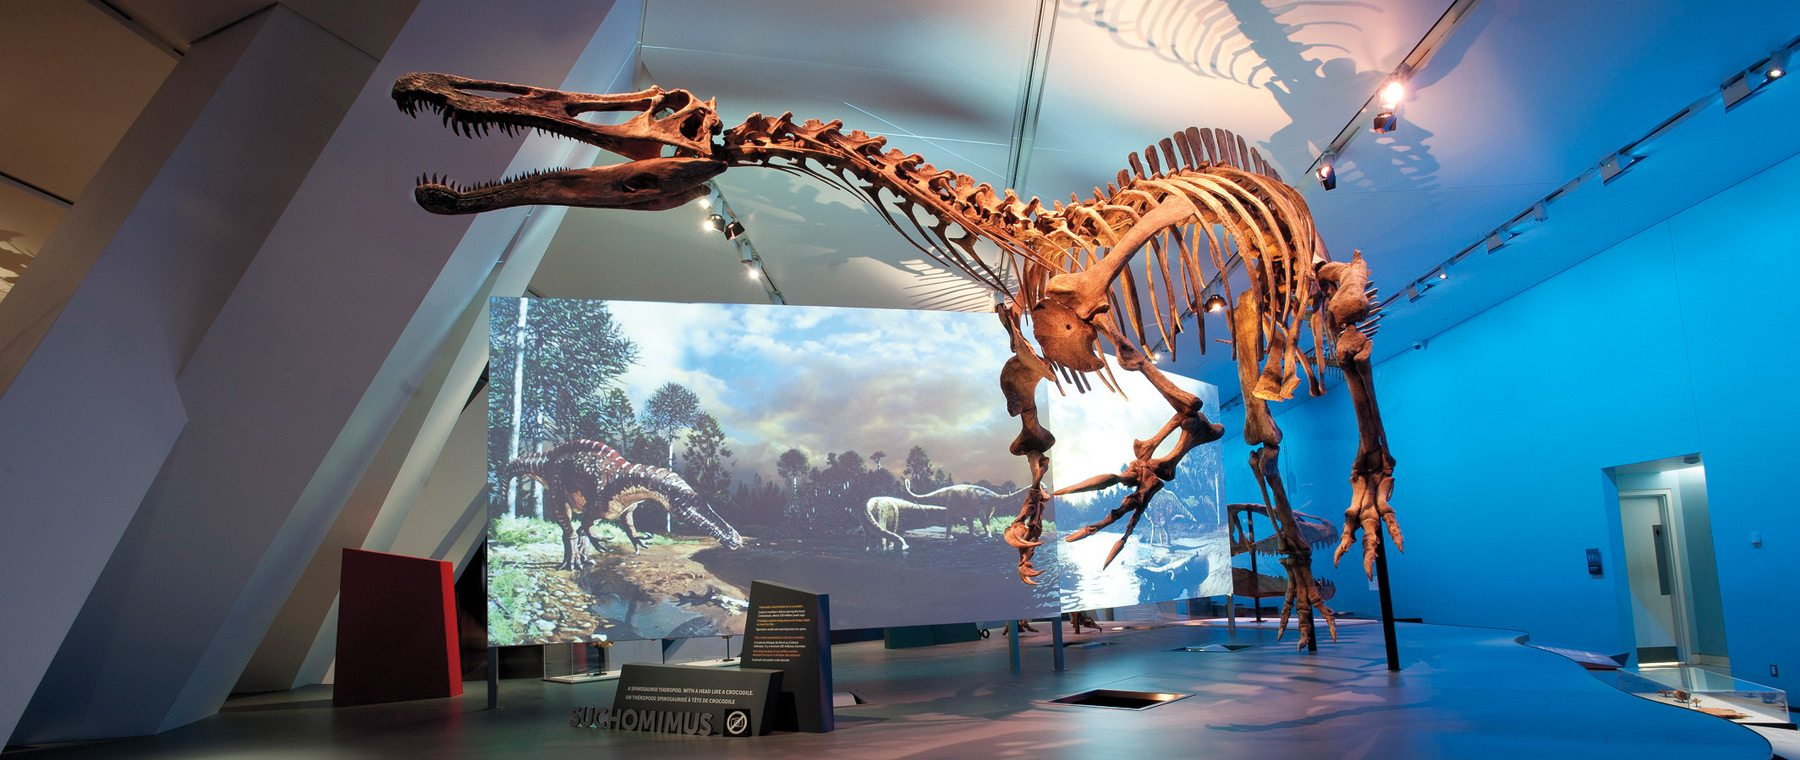 The 'Ultimate' exhibit — Dinosaurs at the Museum of Nature